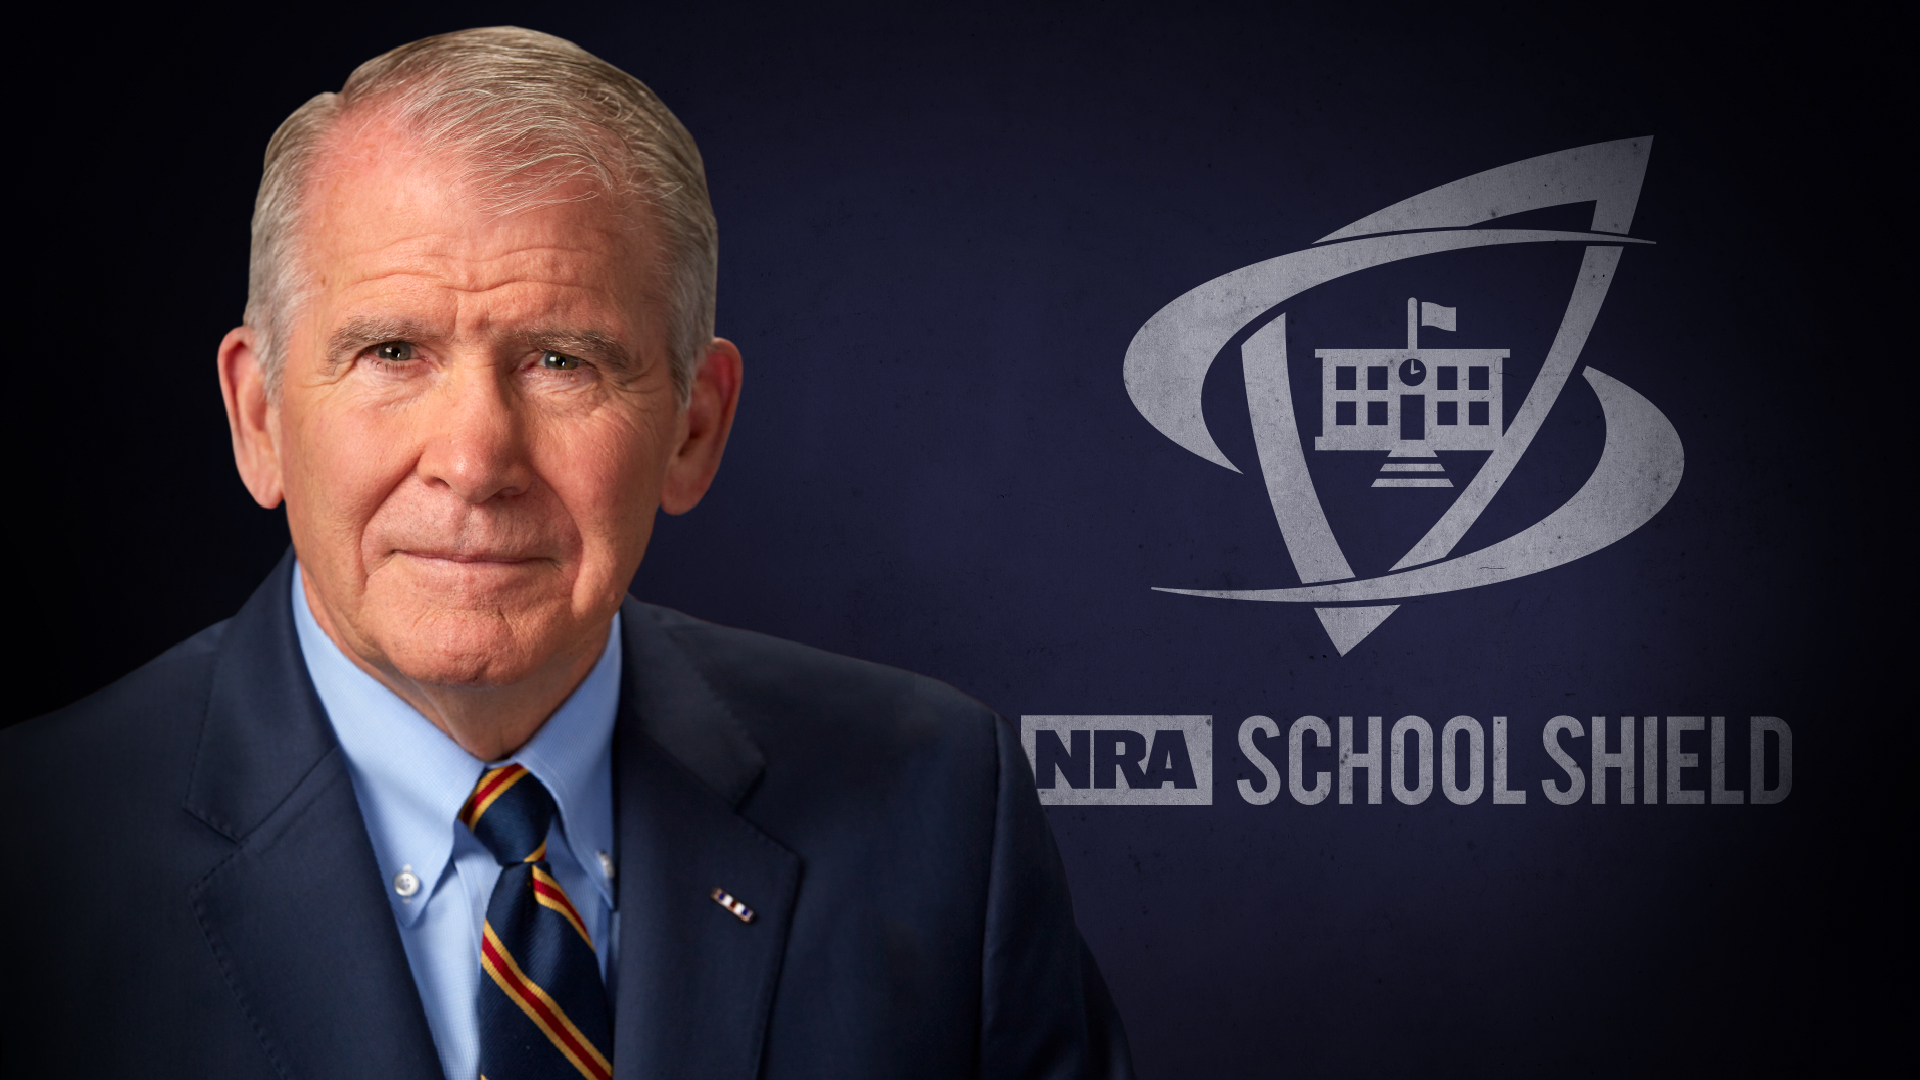 NRA School Shield: Guardians of Our School Children